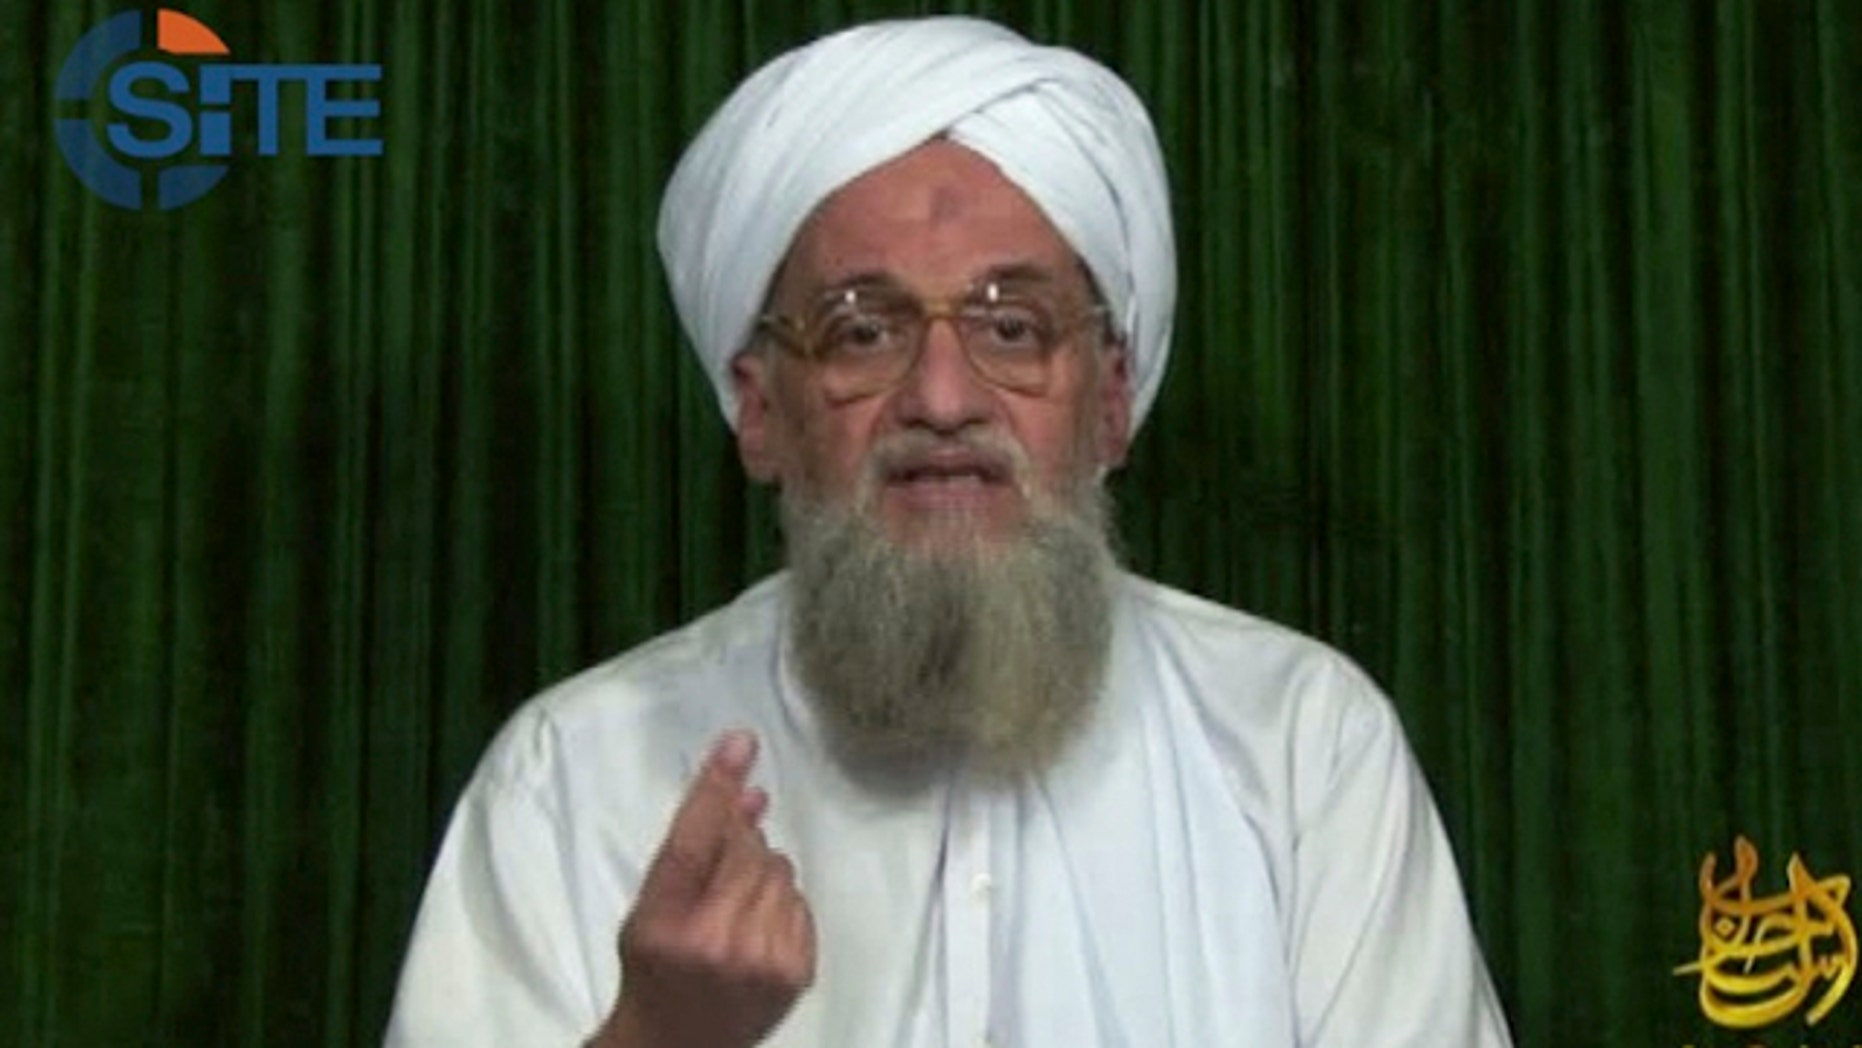 Feb. 12, 2012: This image from video AP obtained from the SITE Intel Group, an American private terrorist threat analysis company, has been authenticated based on details in it, shows Al Qaeda's leader Ayman al-Zawahri in a web posting by Al Qaeda's media arm, as-Sahab, calling on Muslims across the Arab world and beyond to support rebels in Syria who are seeking to overthrow President Bashar Assad. (AP/SITE Intel Group)